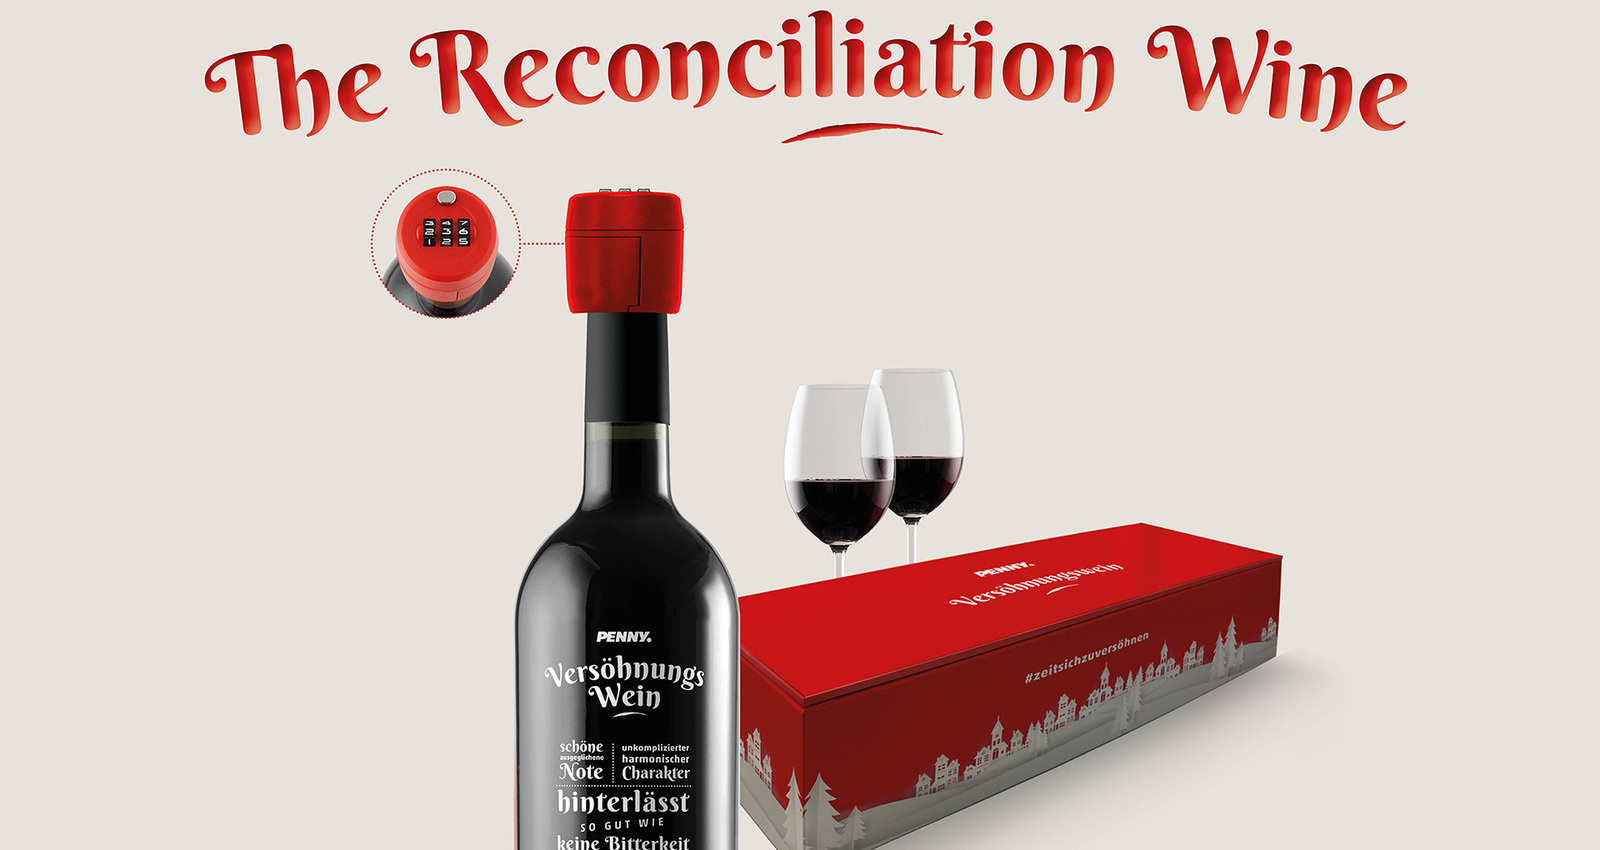 The Reconciliation Wine